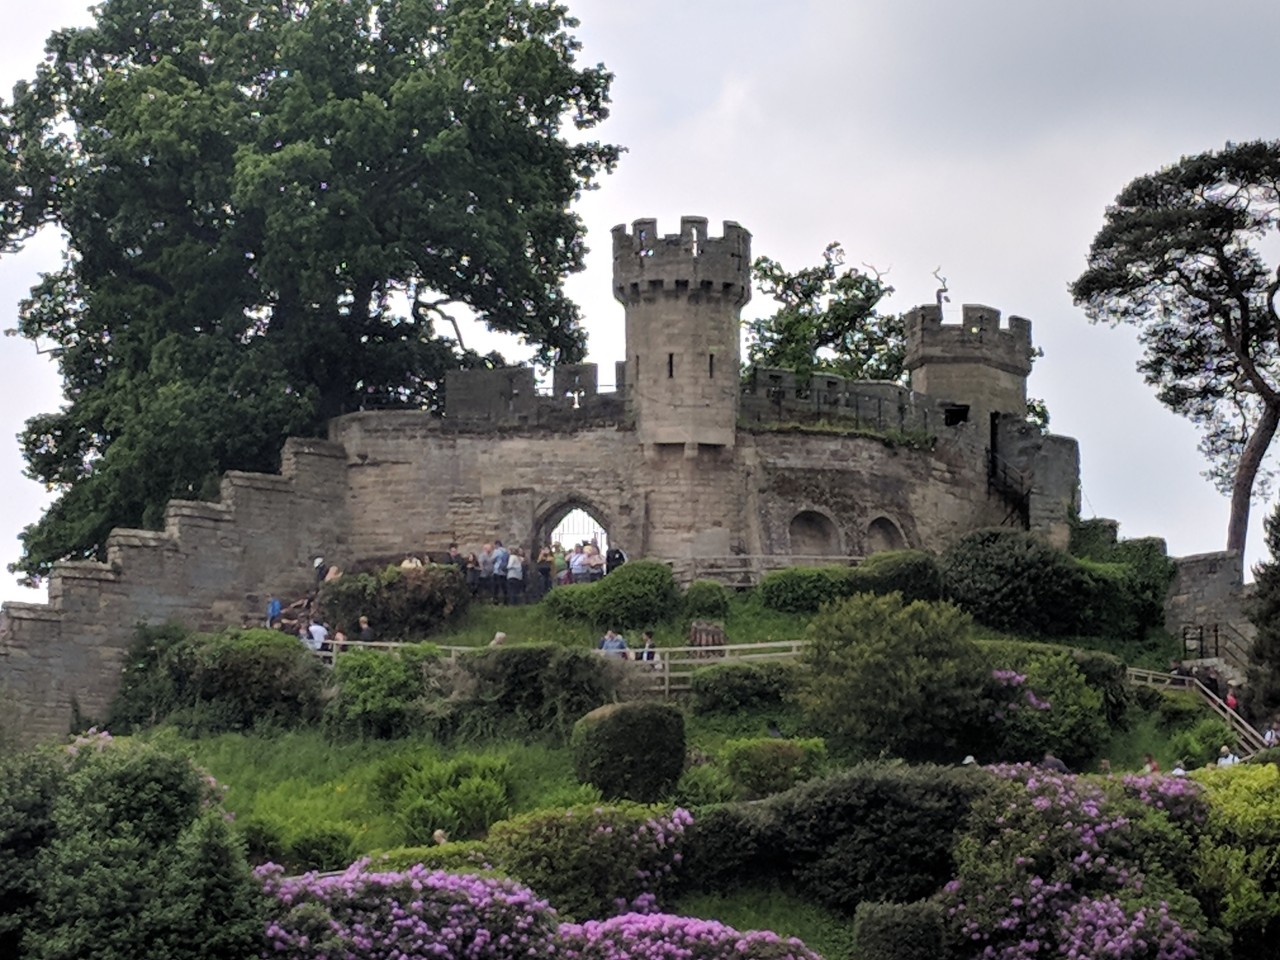 Day 3b: Warwick Castle, a.k.a. Game ofThrones